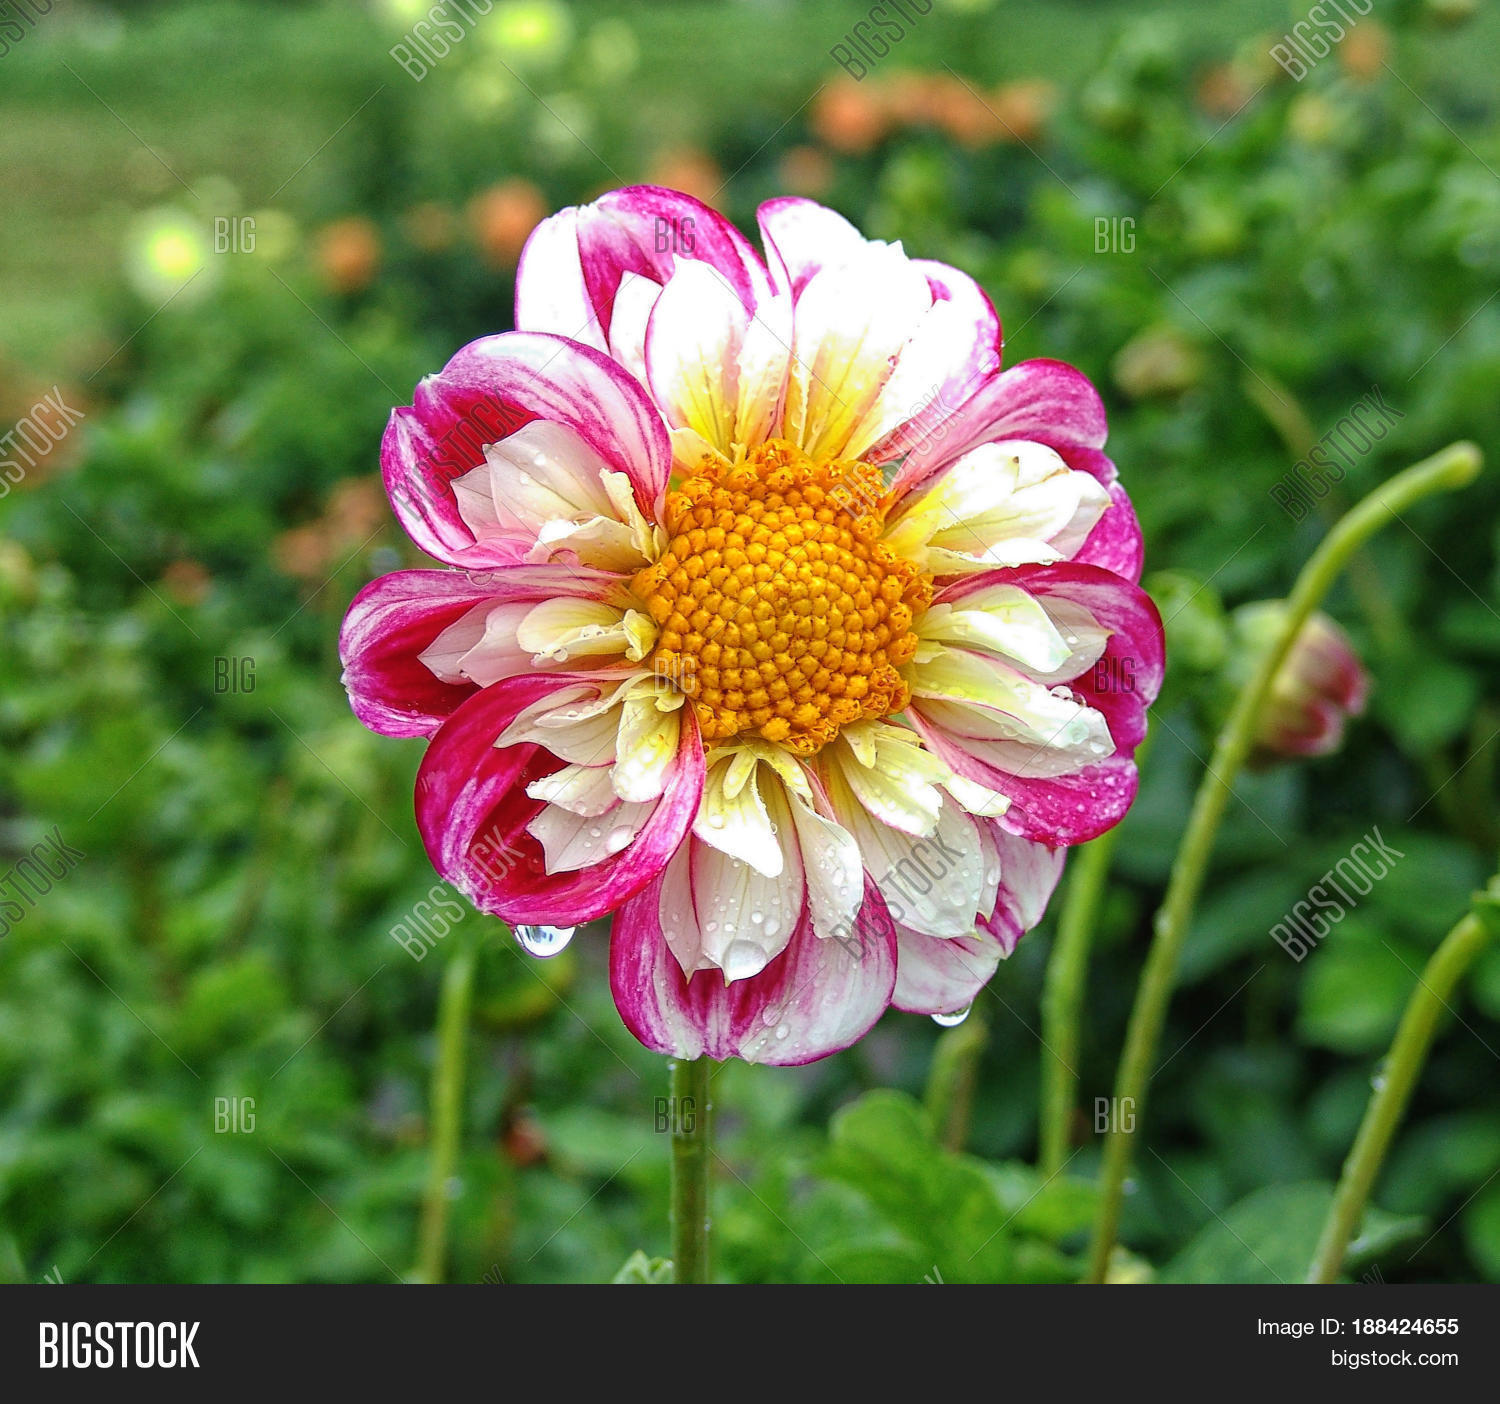 Closeup dahlia garden image photo free trial bigstock closeup of dahlia in the garden the flower is in full bloom with petals in izmirmasajfo